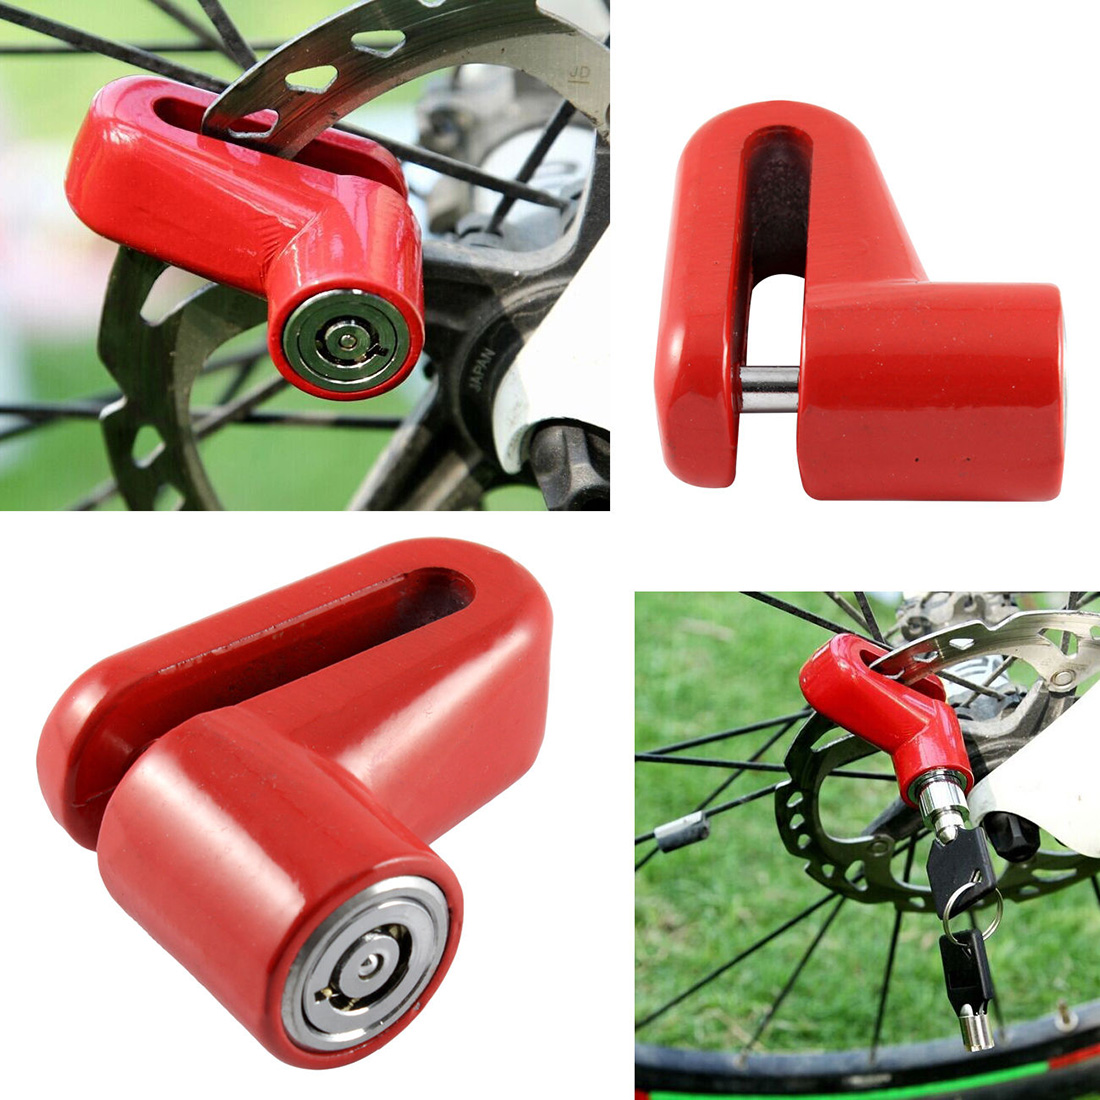 <font><b>CAR</b></font>-partment Good Quality Motorcycle Bicycle Sturdy <font><b>Wheel</b></font> Disc Brake Lock Security Anti Thief Alarm <font><b>Disk</b></font> Disc Brake Rotor Lock image